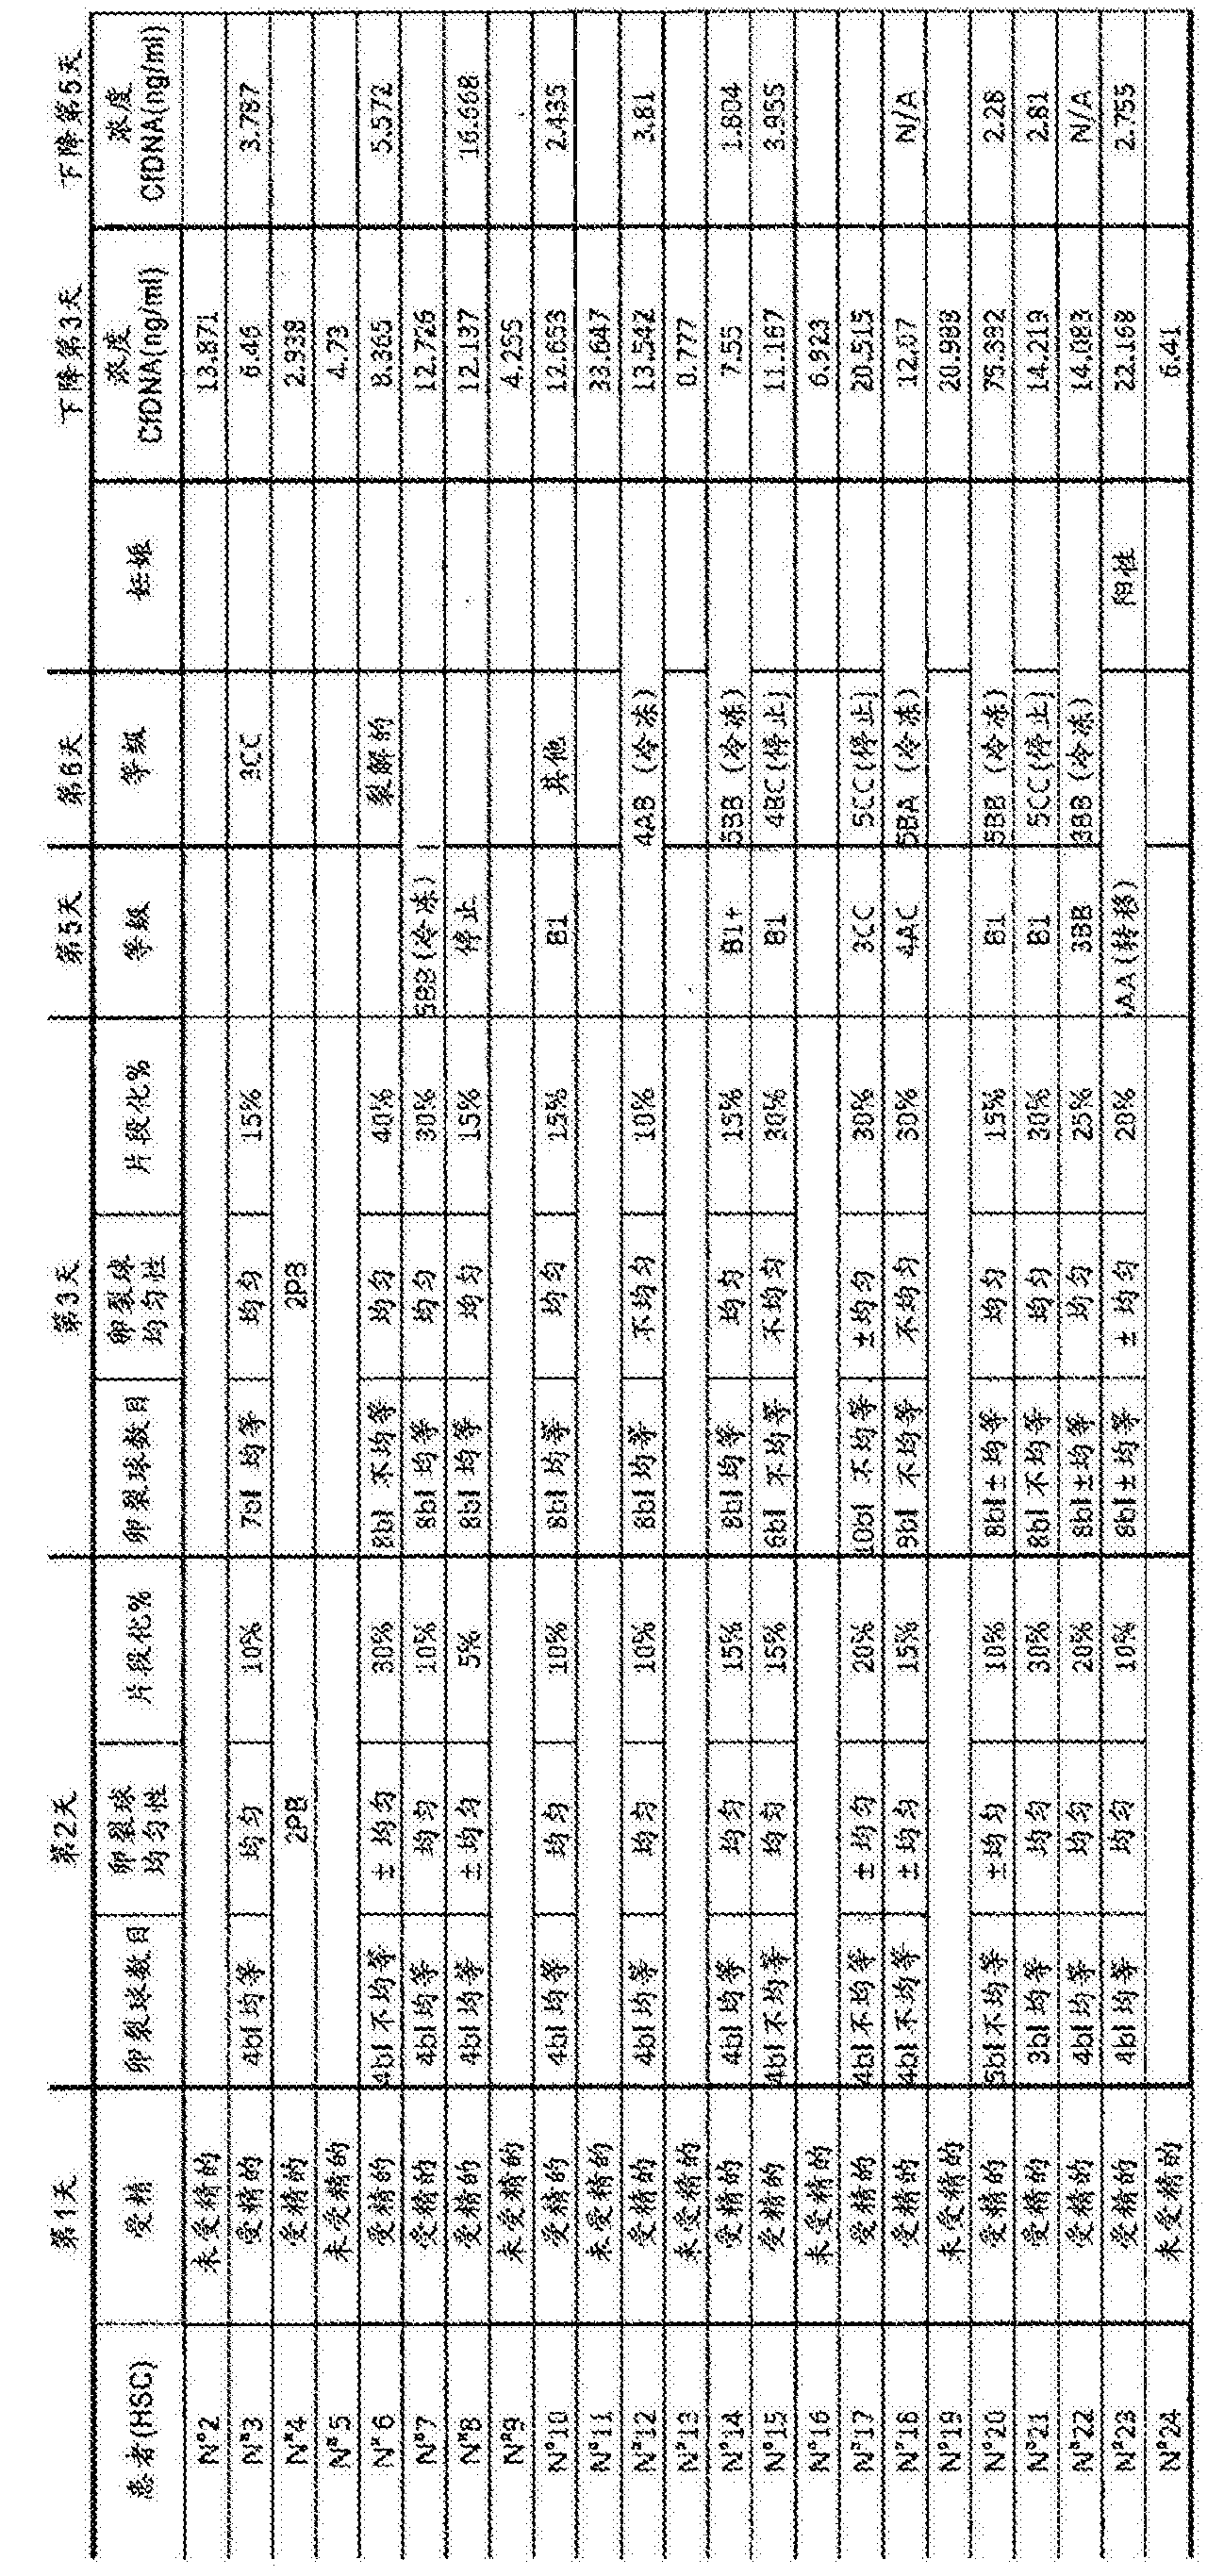 CN105722995A - Methods for determining the quality of an embryo